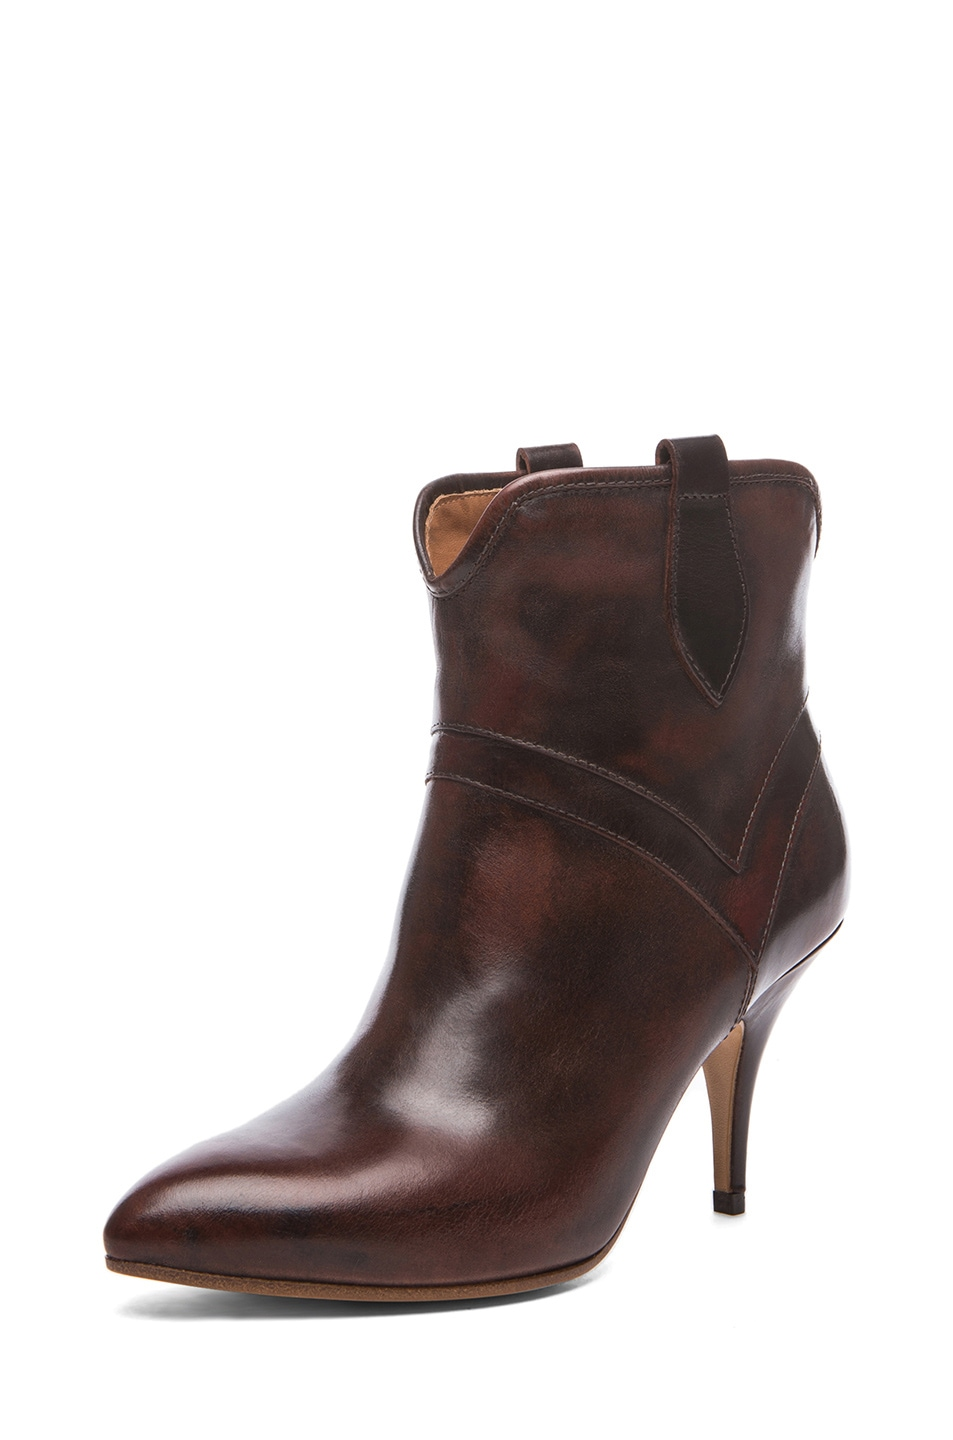 Image 2 of Maison Margiela Leather Texan Brushed Effect Bootie in Brandy